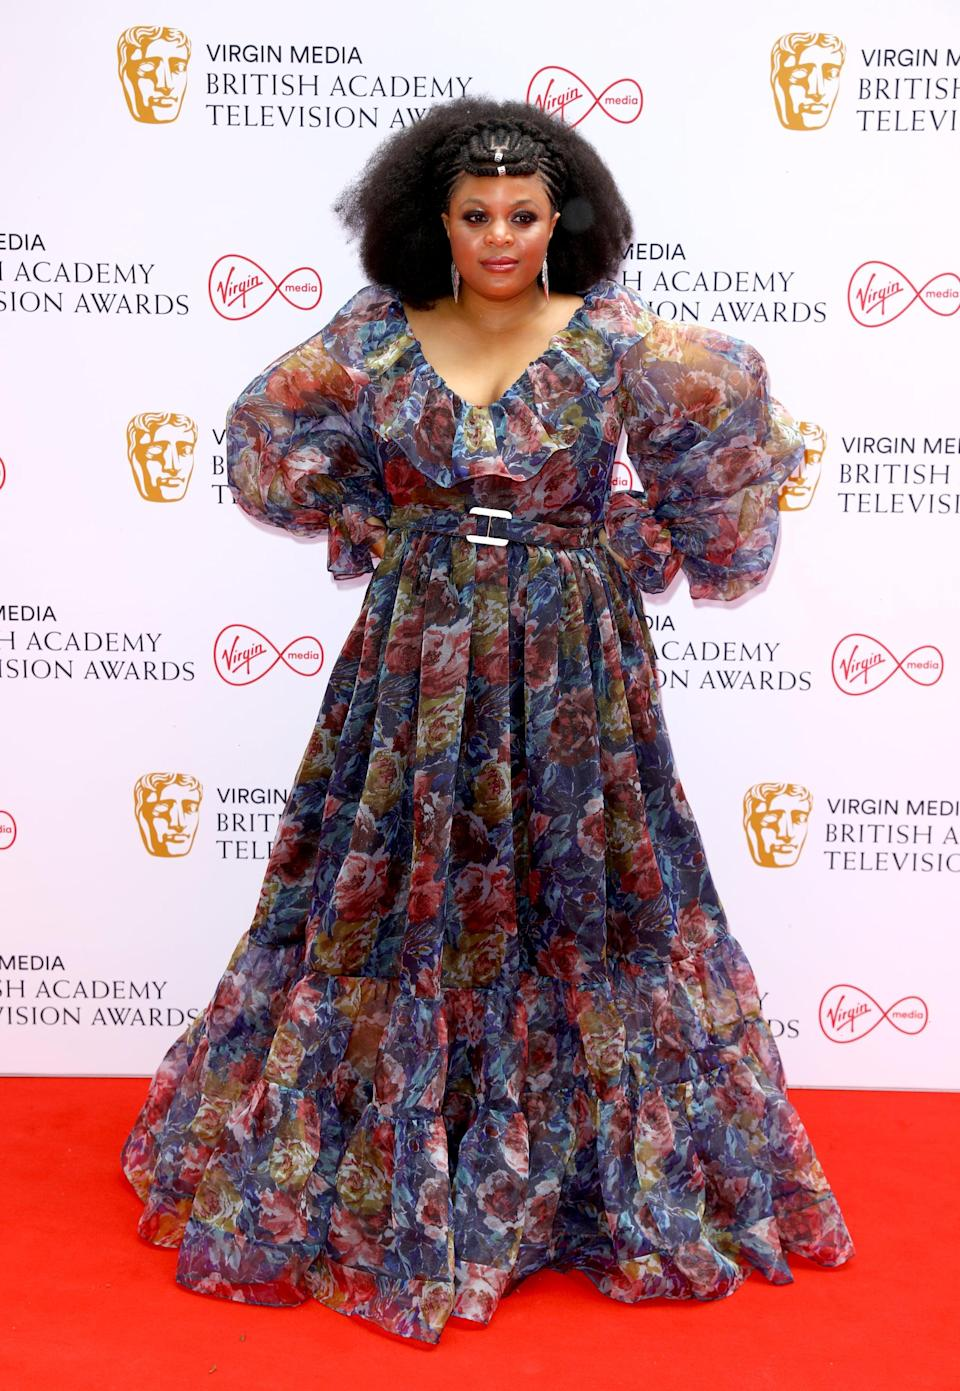 <p>Gbemisola Ikumelo wore a floral gown with ruffle details.</p>